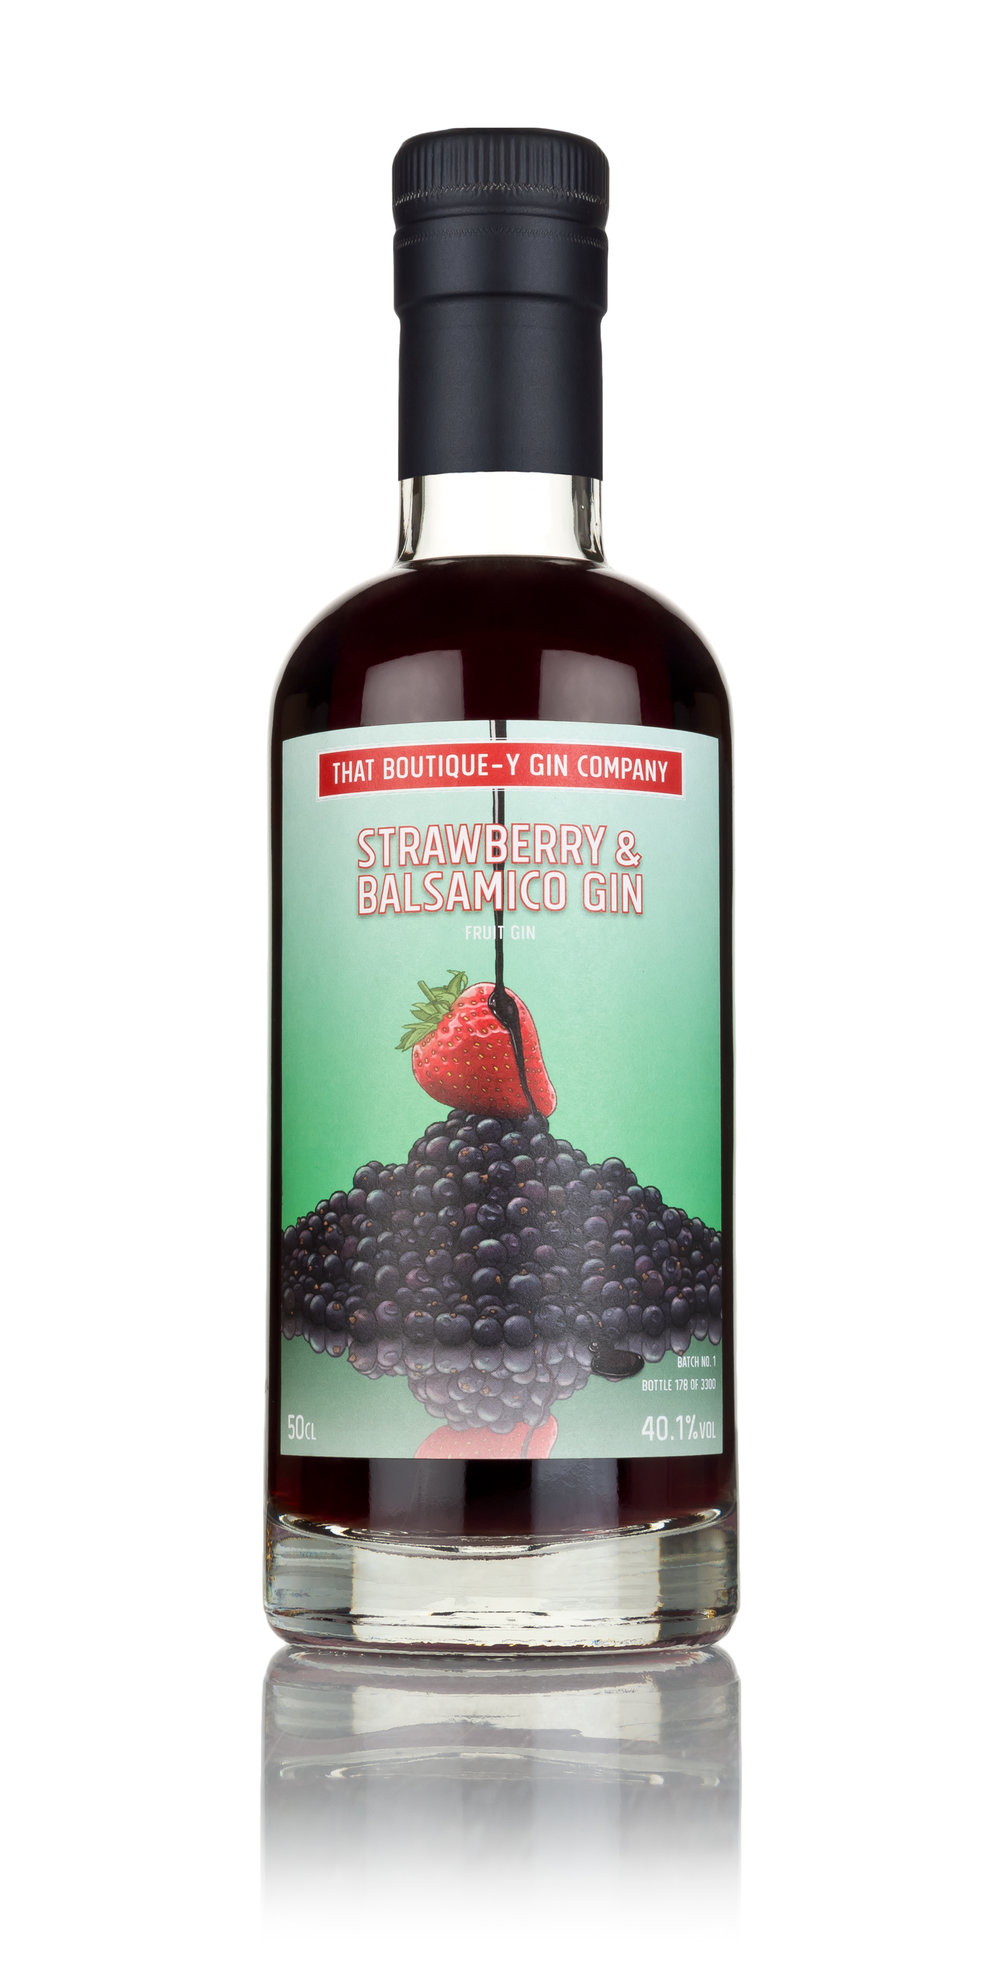 Strawberry & Balsamico Gin (That Boutique-y Gin Company).jpg